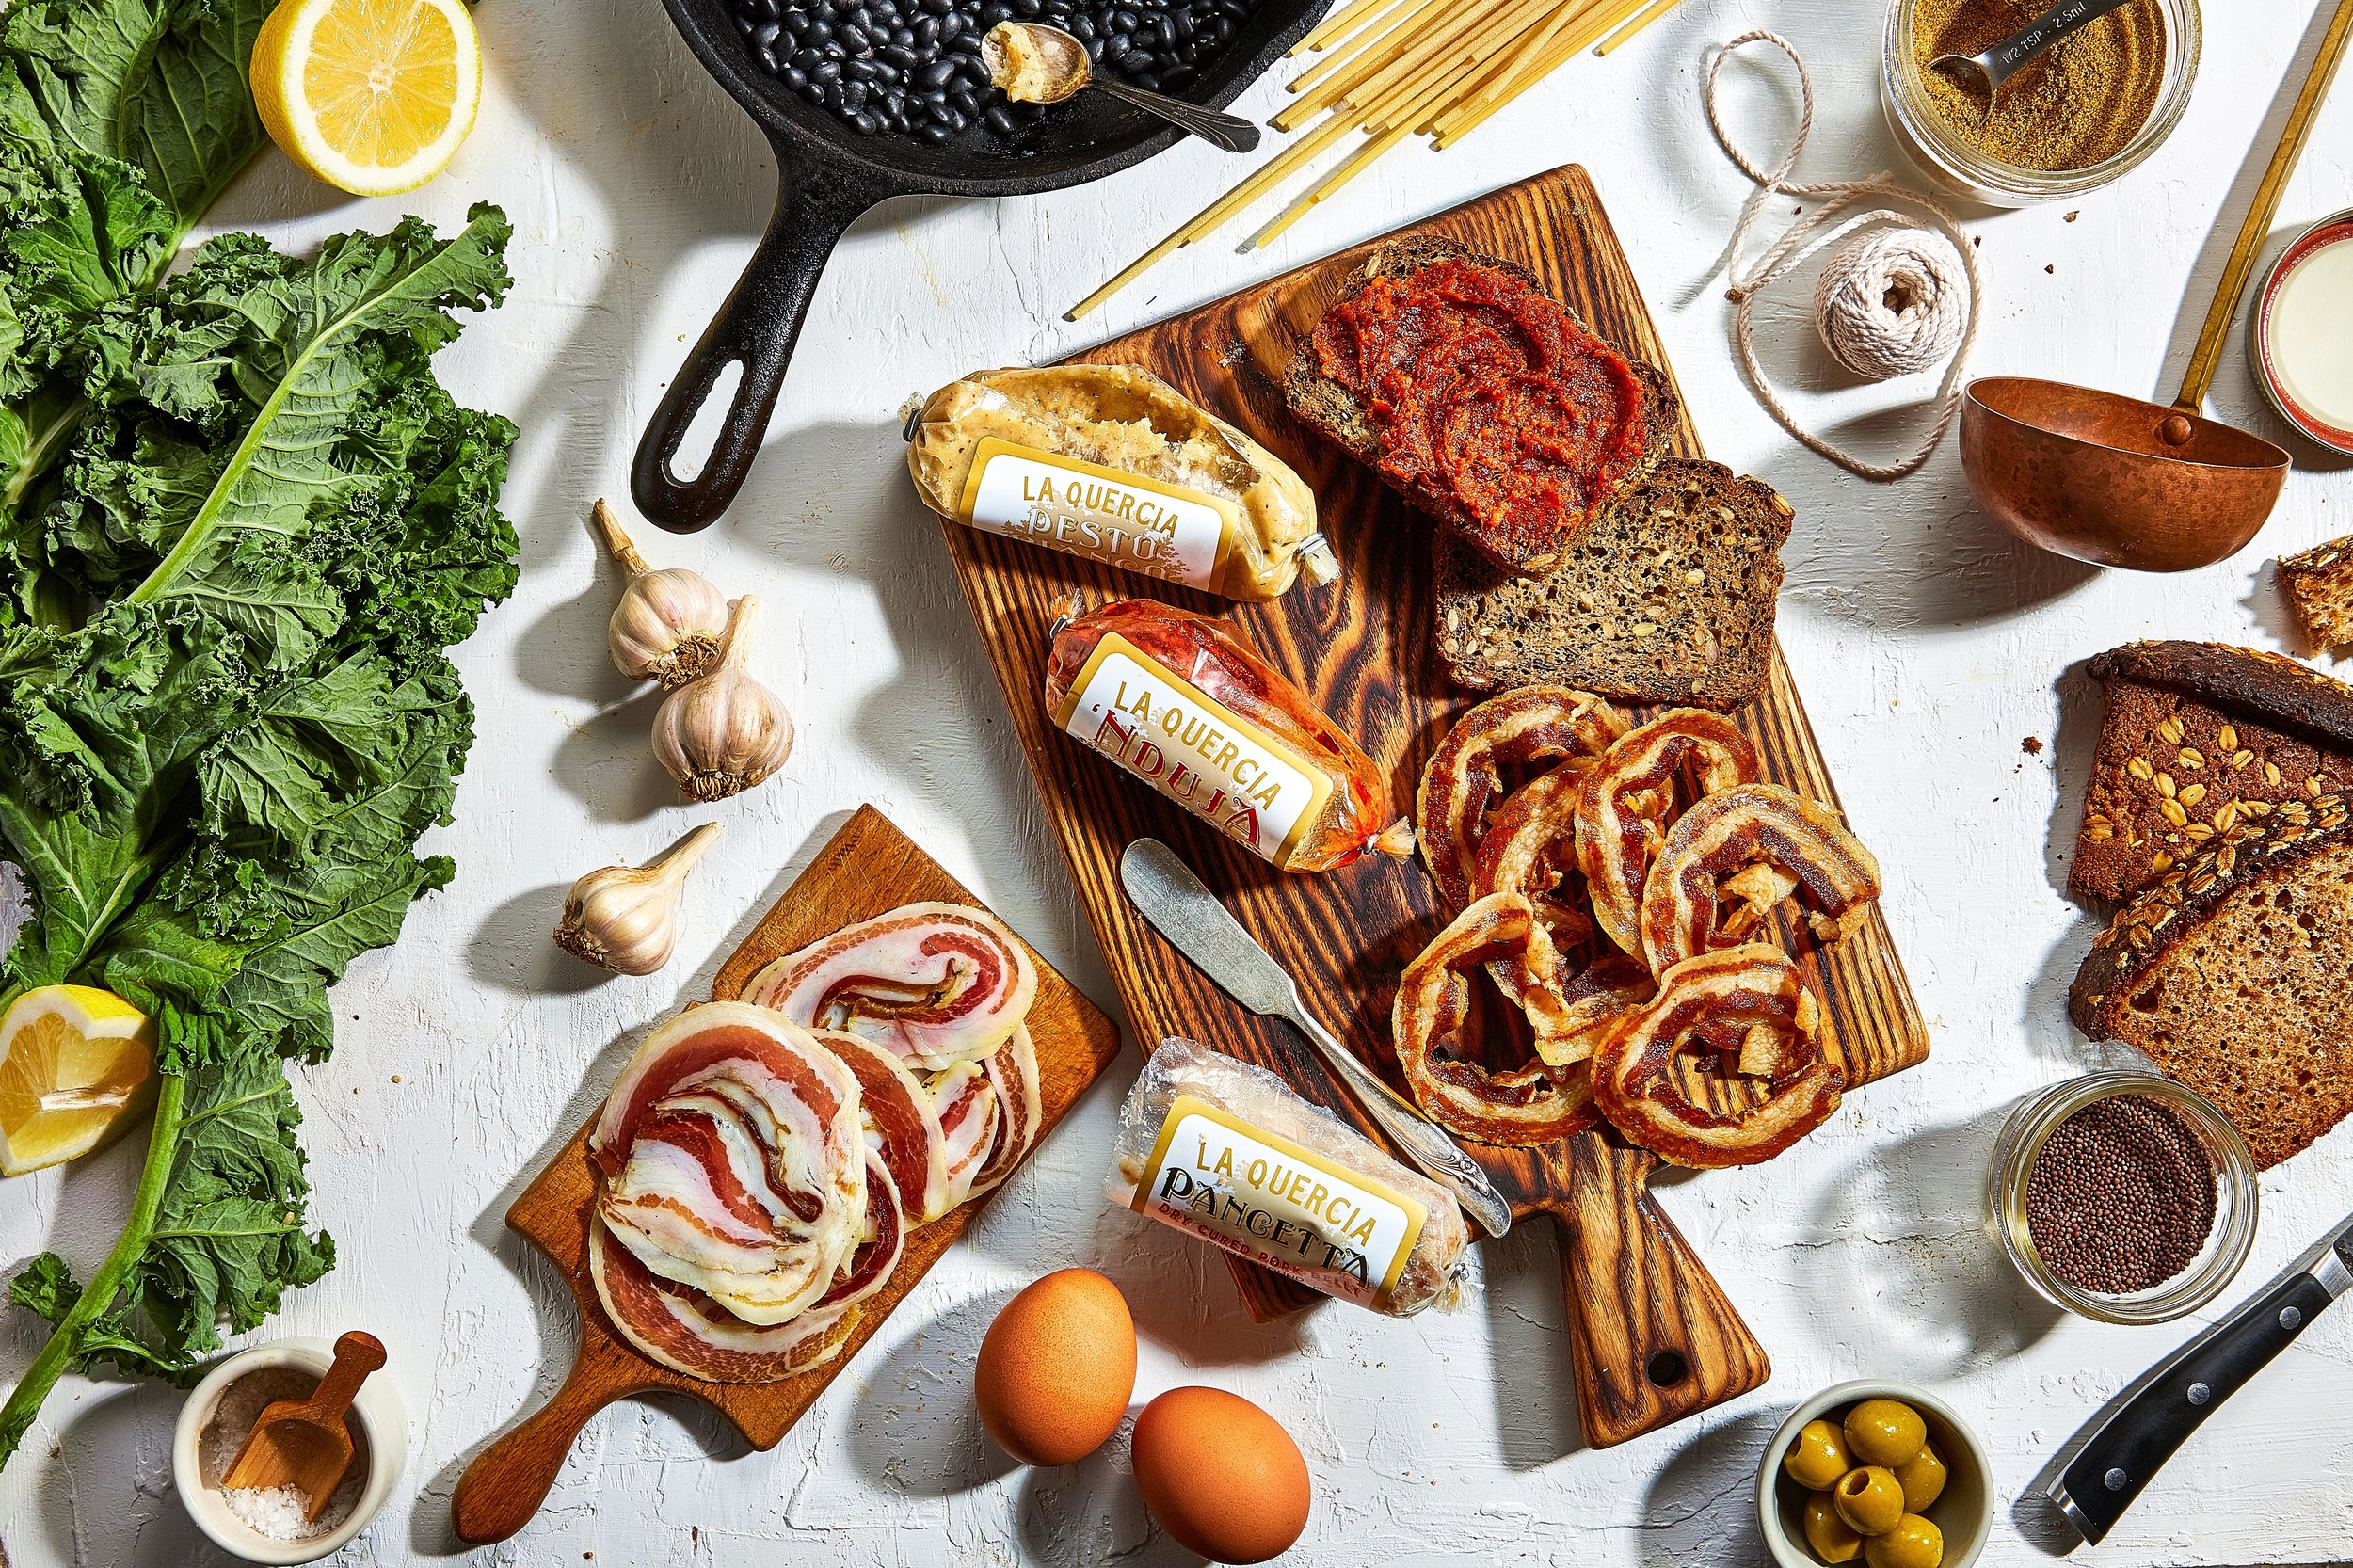 cooking-ingredients-spreads-pancetta-plaster-small.jpg